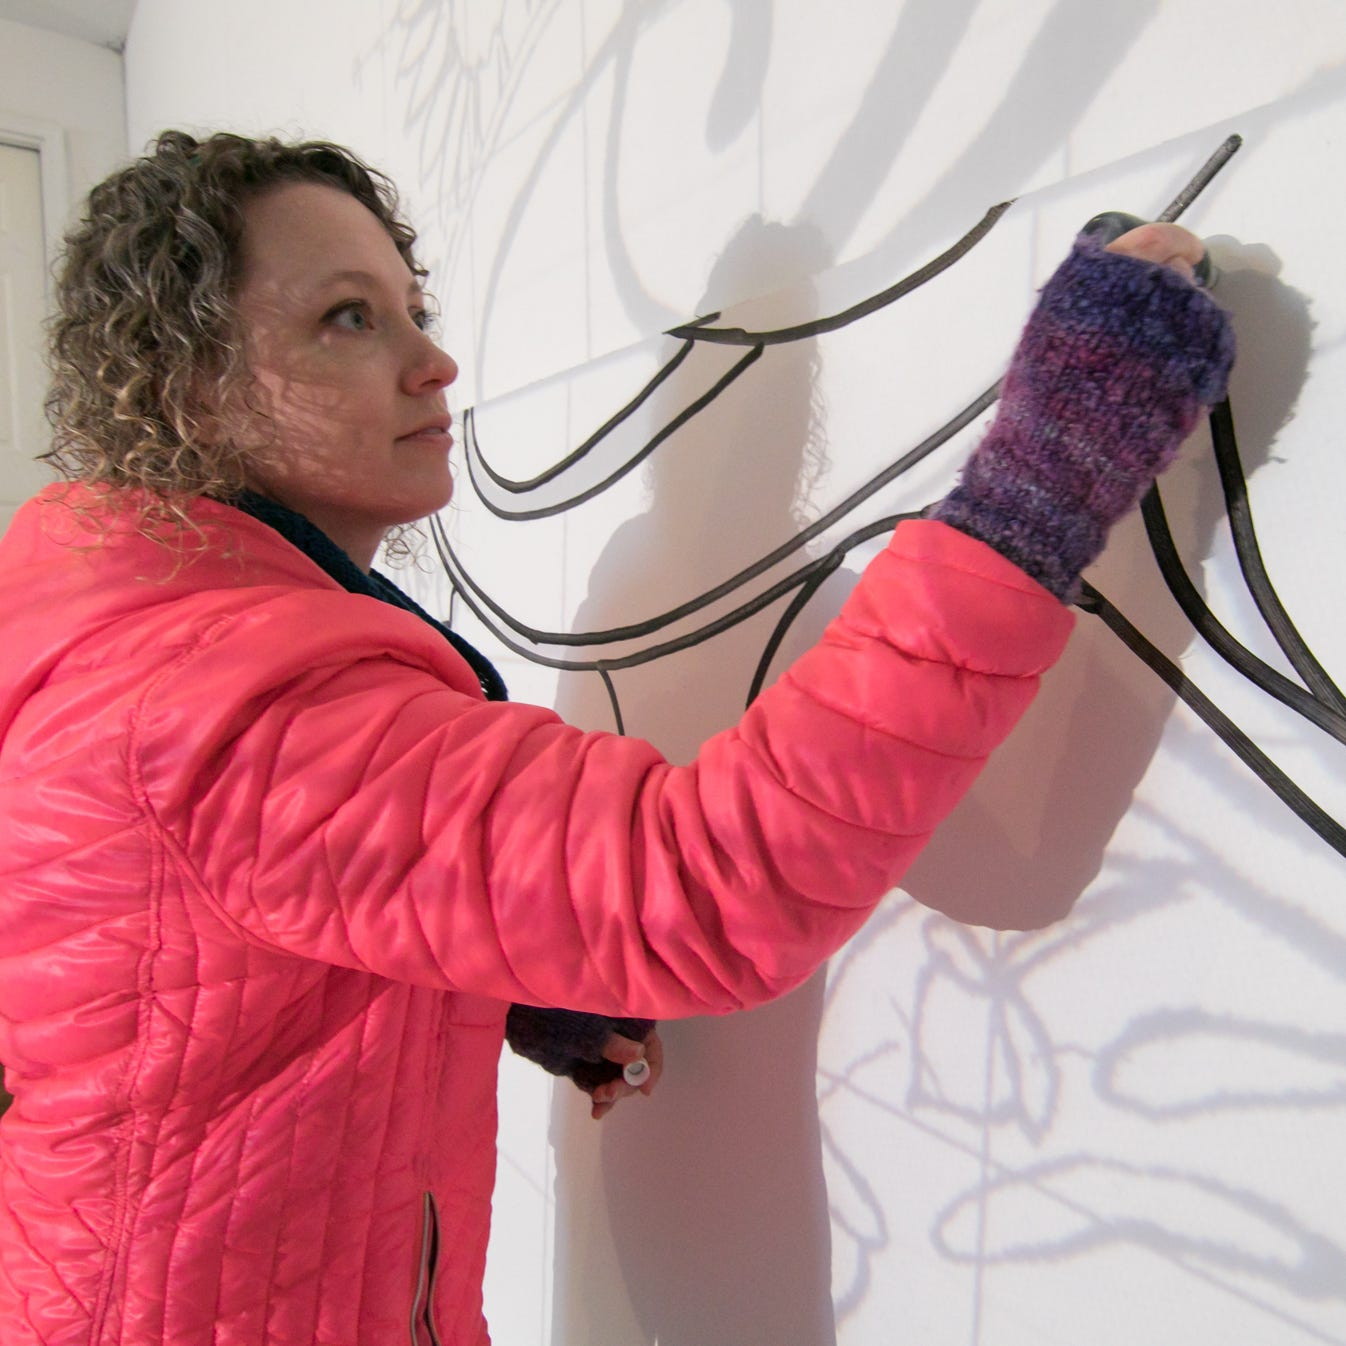 Muralists to paint downtown Howell buildings during Howell Art Project week